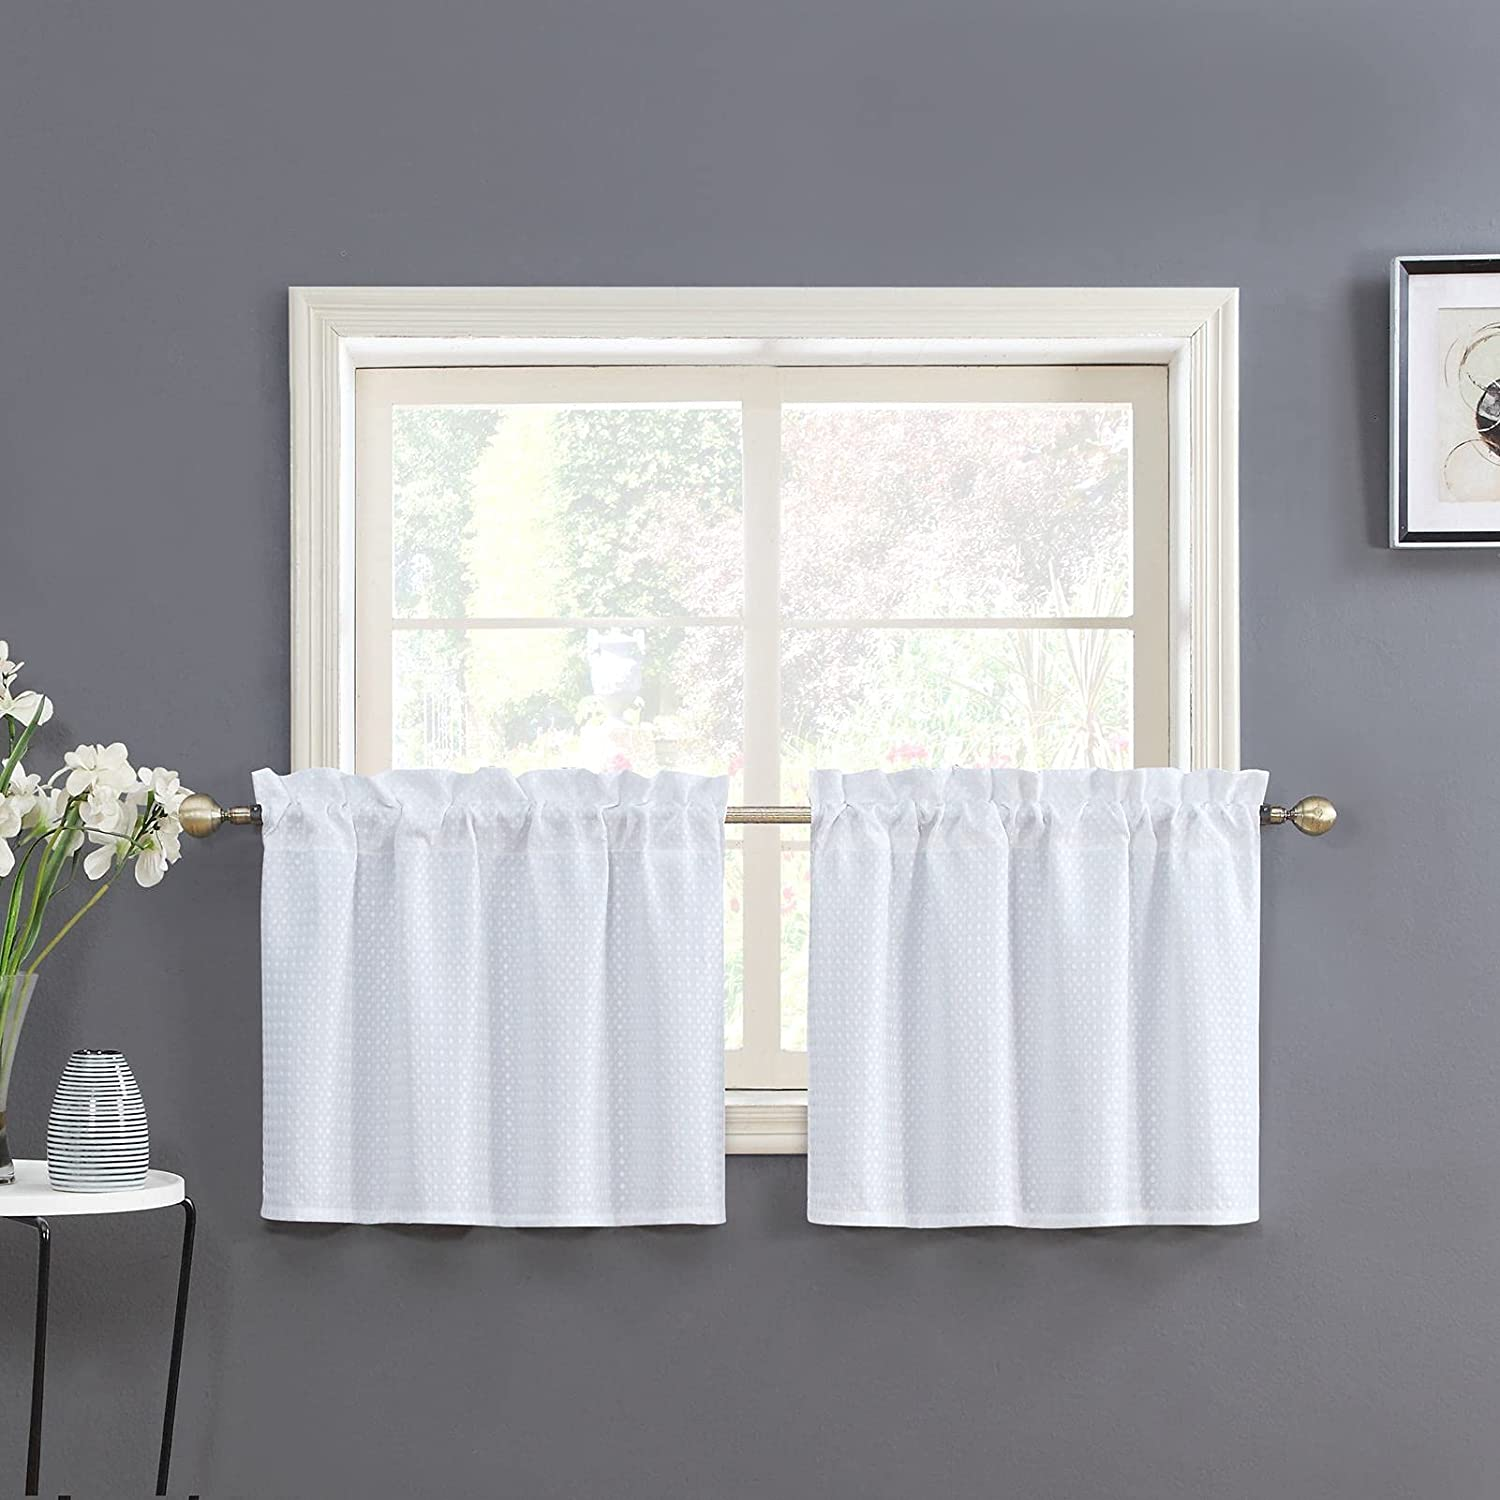 Home Queen White Water Max 78% OFF Resistant New popularity Curtain Bathroom Waffle Window